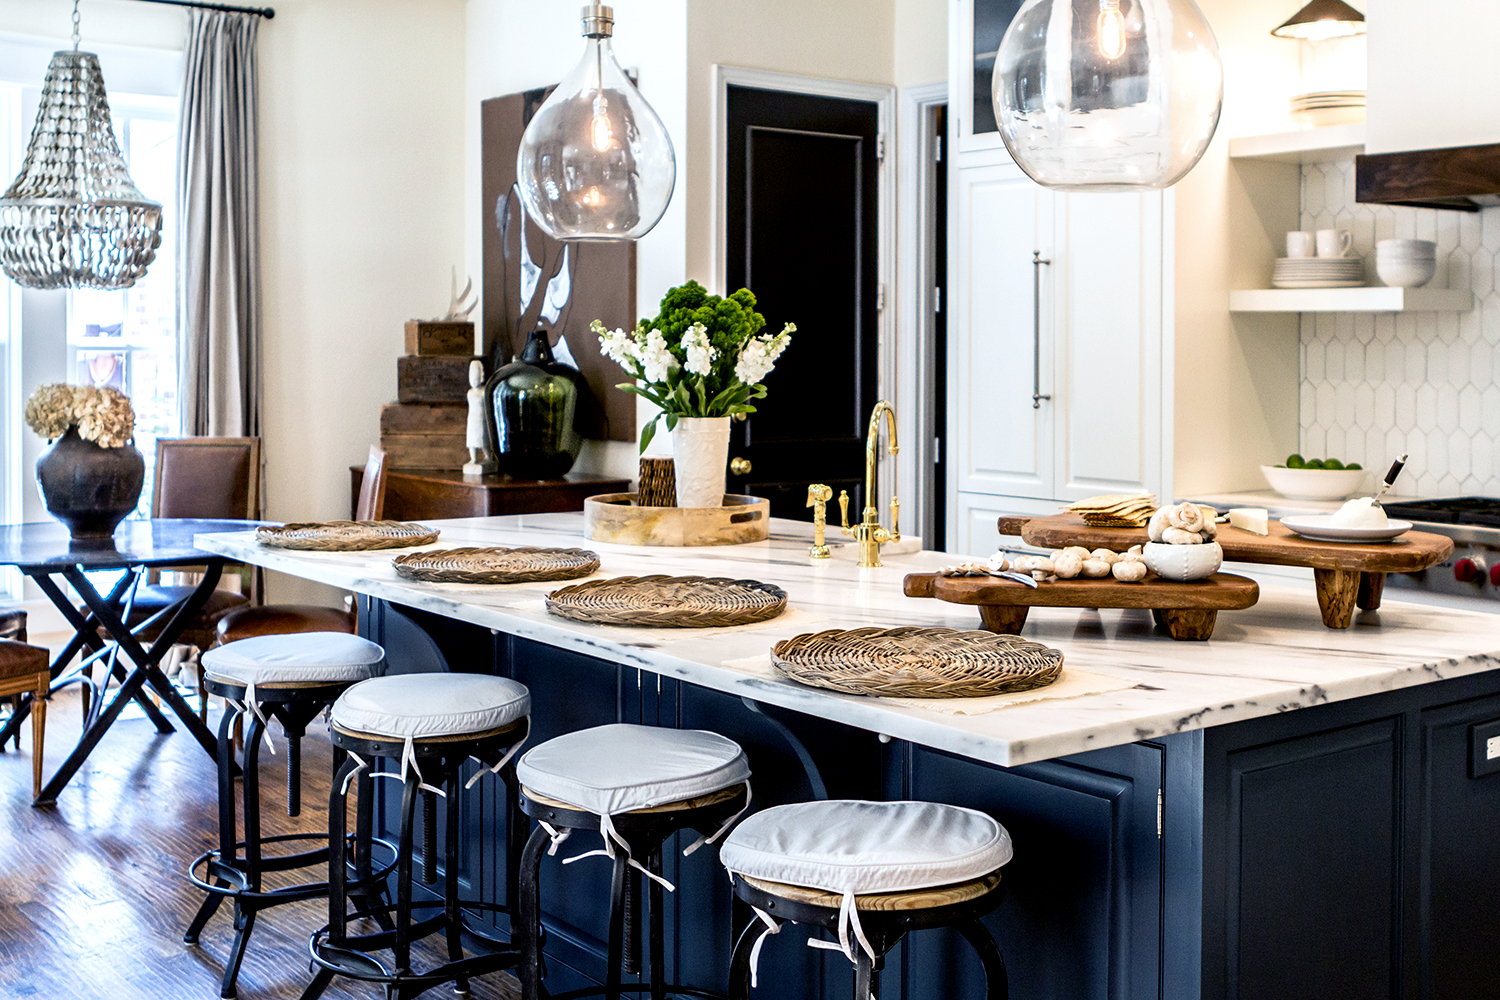 Decor Inspiration: A Go-To Kitchen – The Simply Luxurious Life®